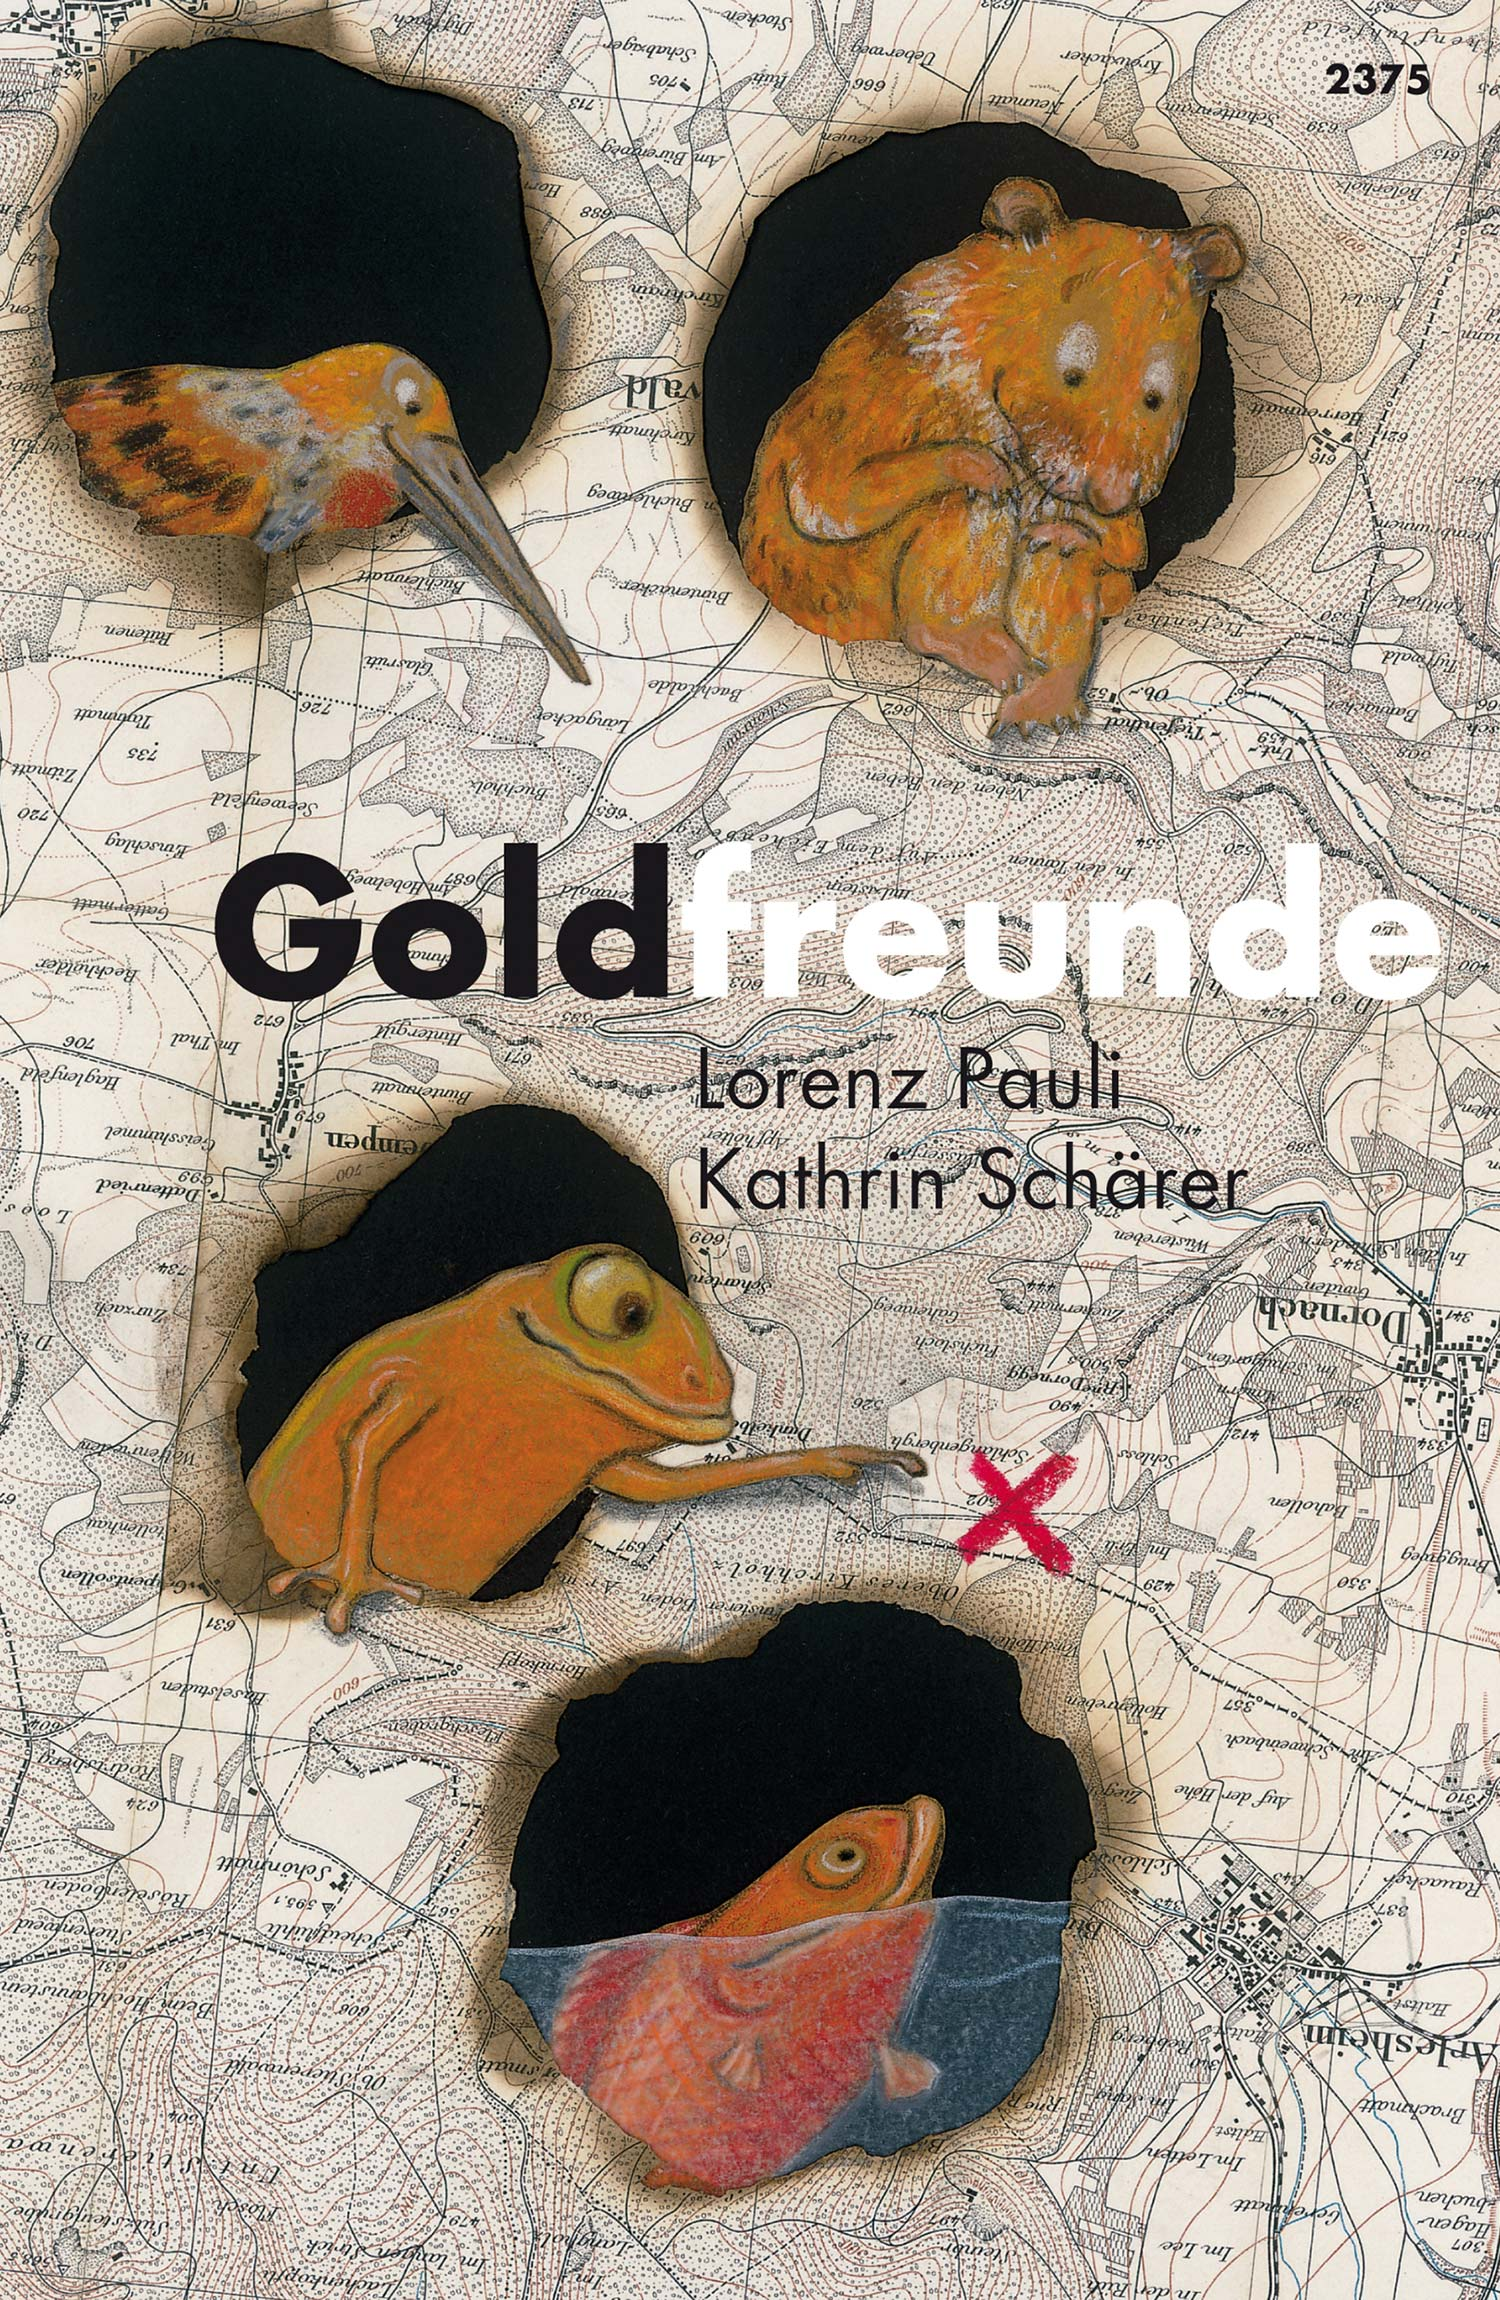 Preview image for LOM object Goldfreunde